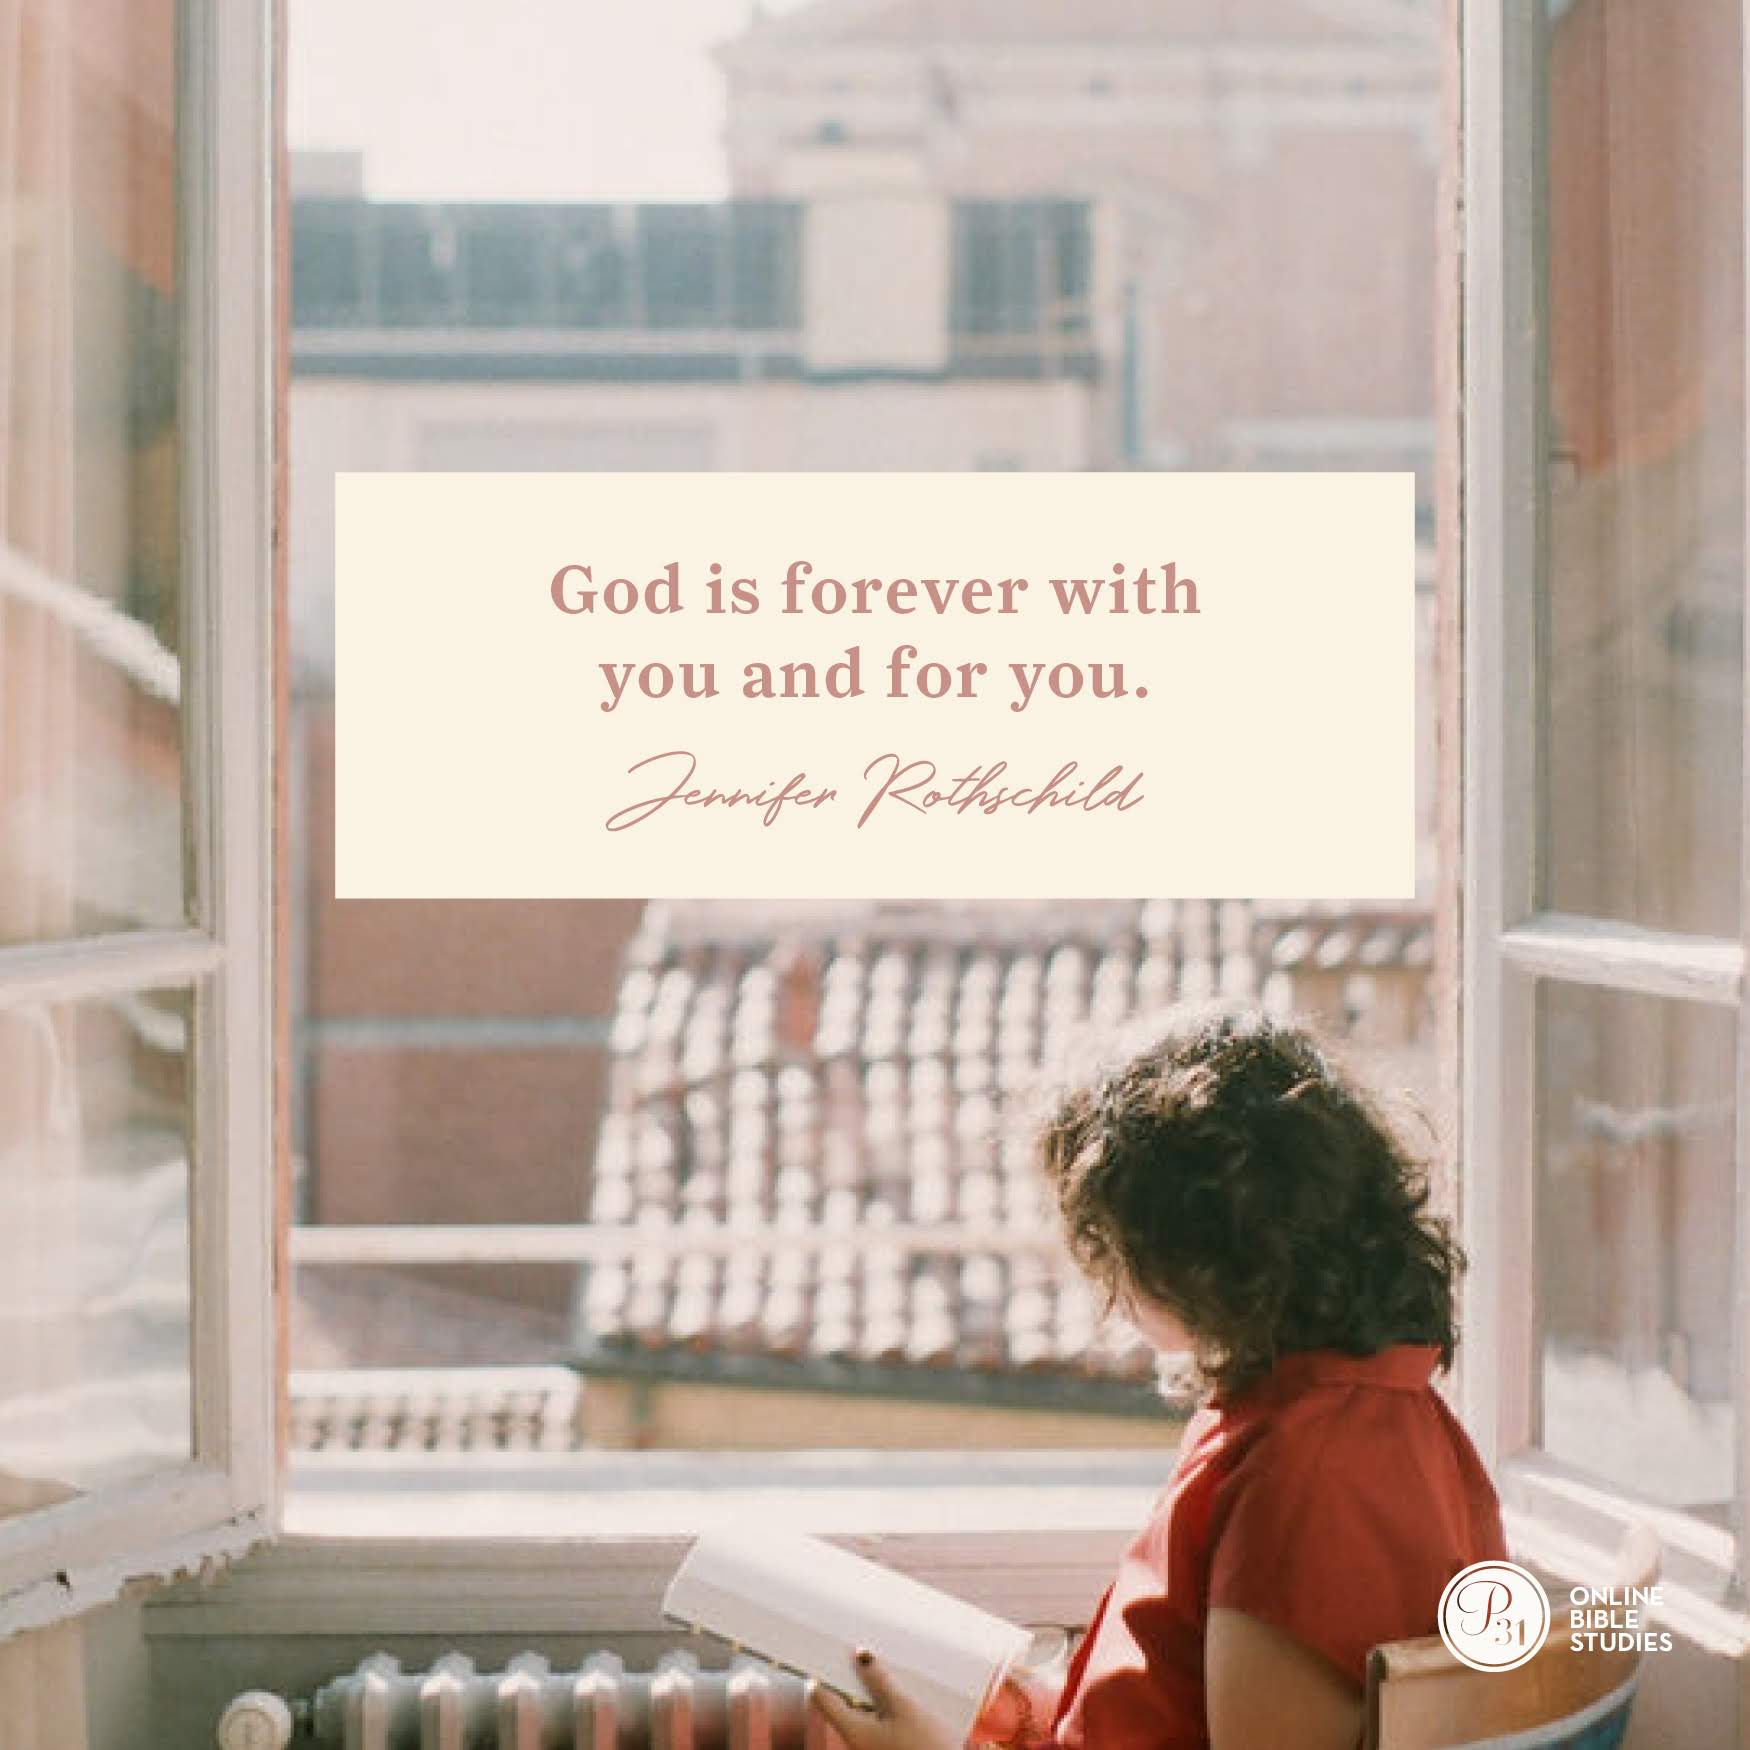 """God is forever with you and for you."" - Jennifer Rothschild  #Psalm23Study 